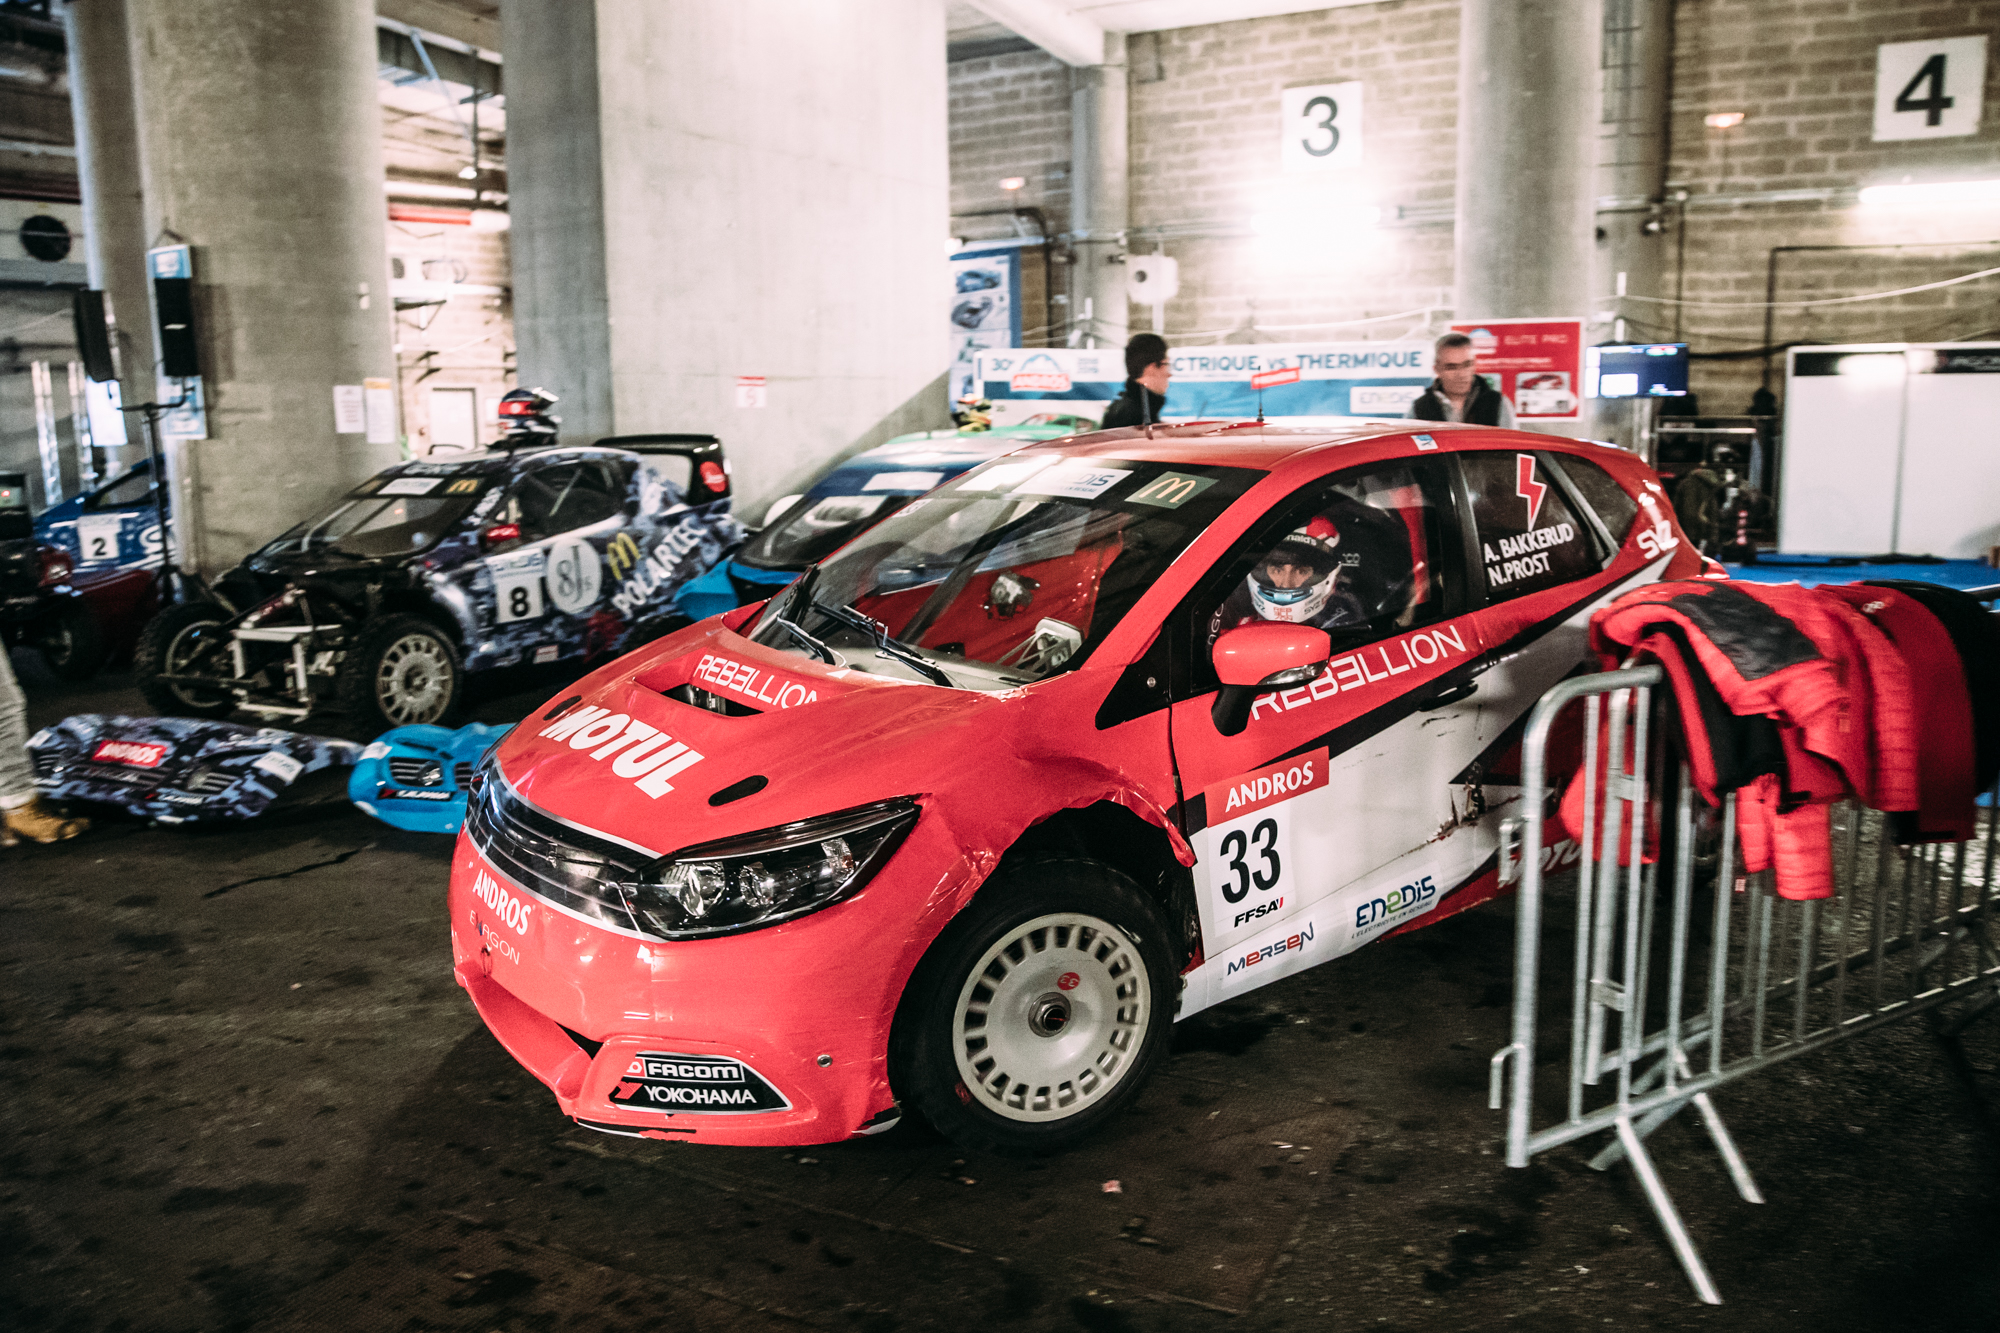 Andreas, coming from a rallycross background how does the Trophée Andros differ from Rallycross?